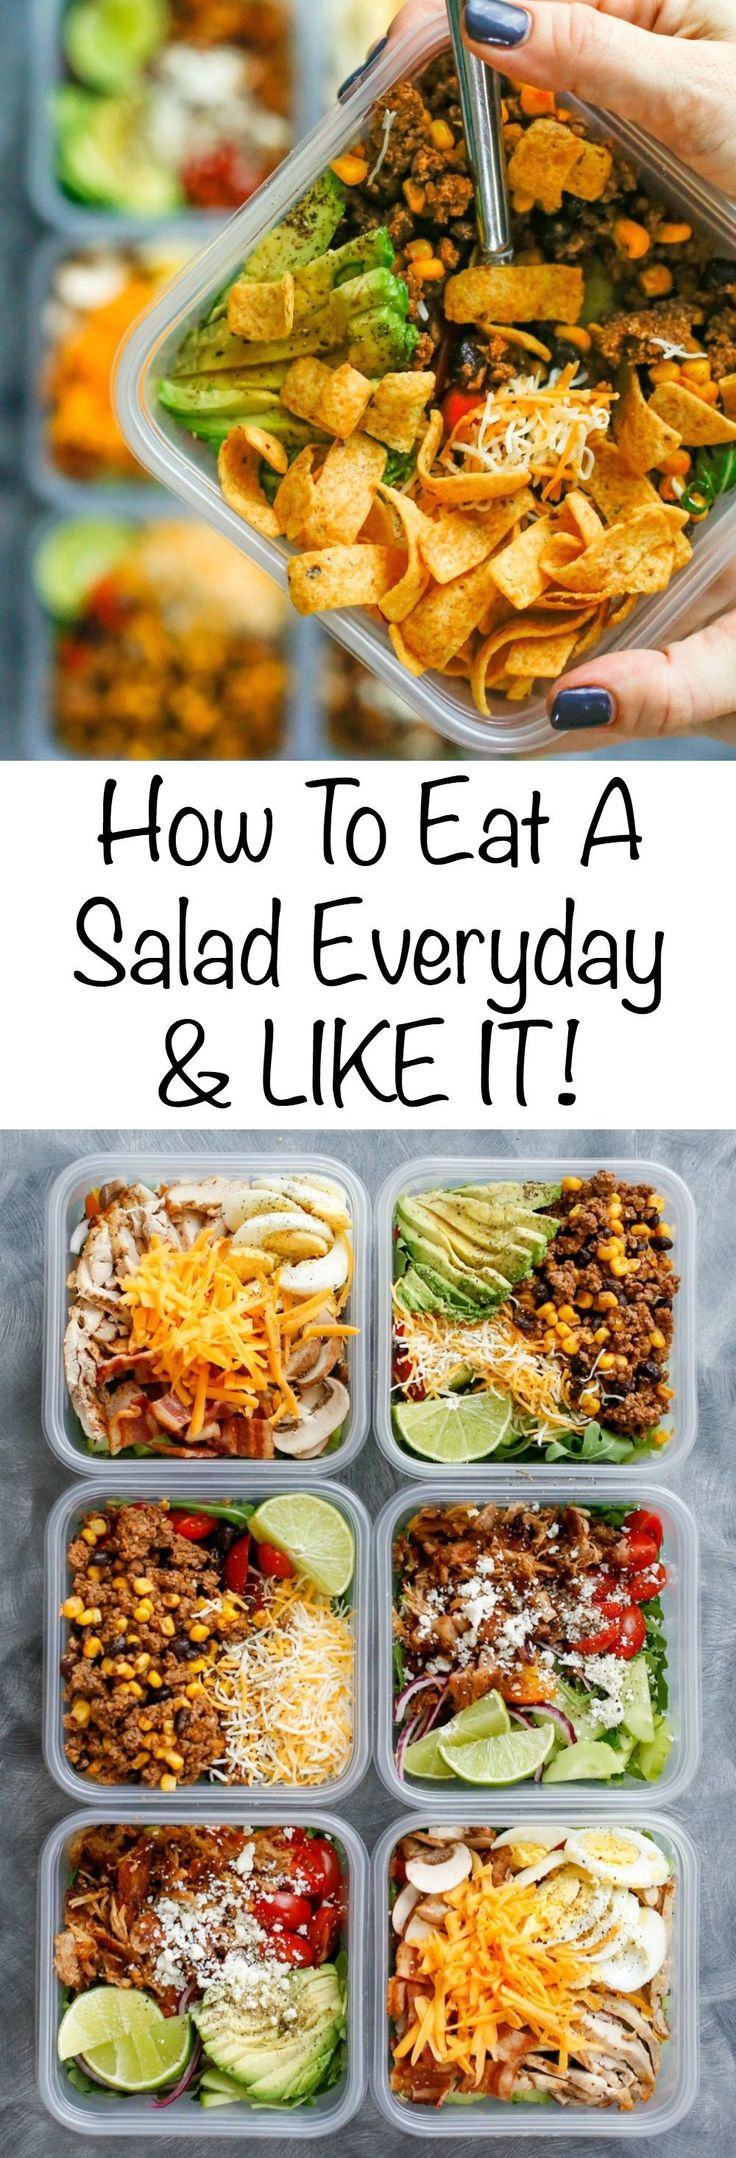 How To Eat Salad Everyday & LIKE IT! get the recipes here!